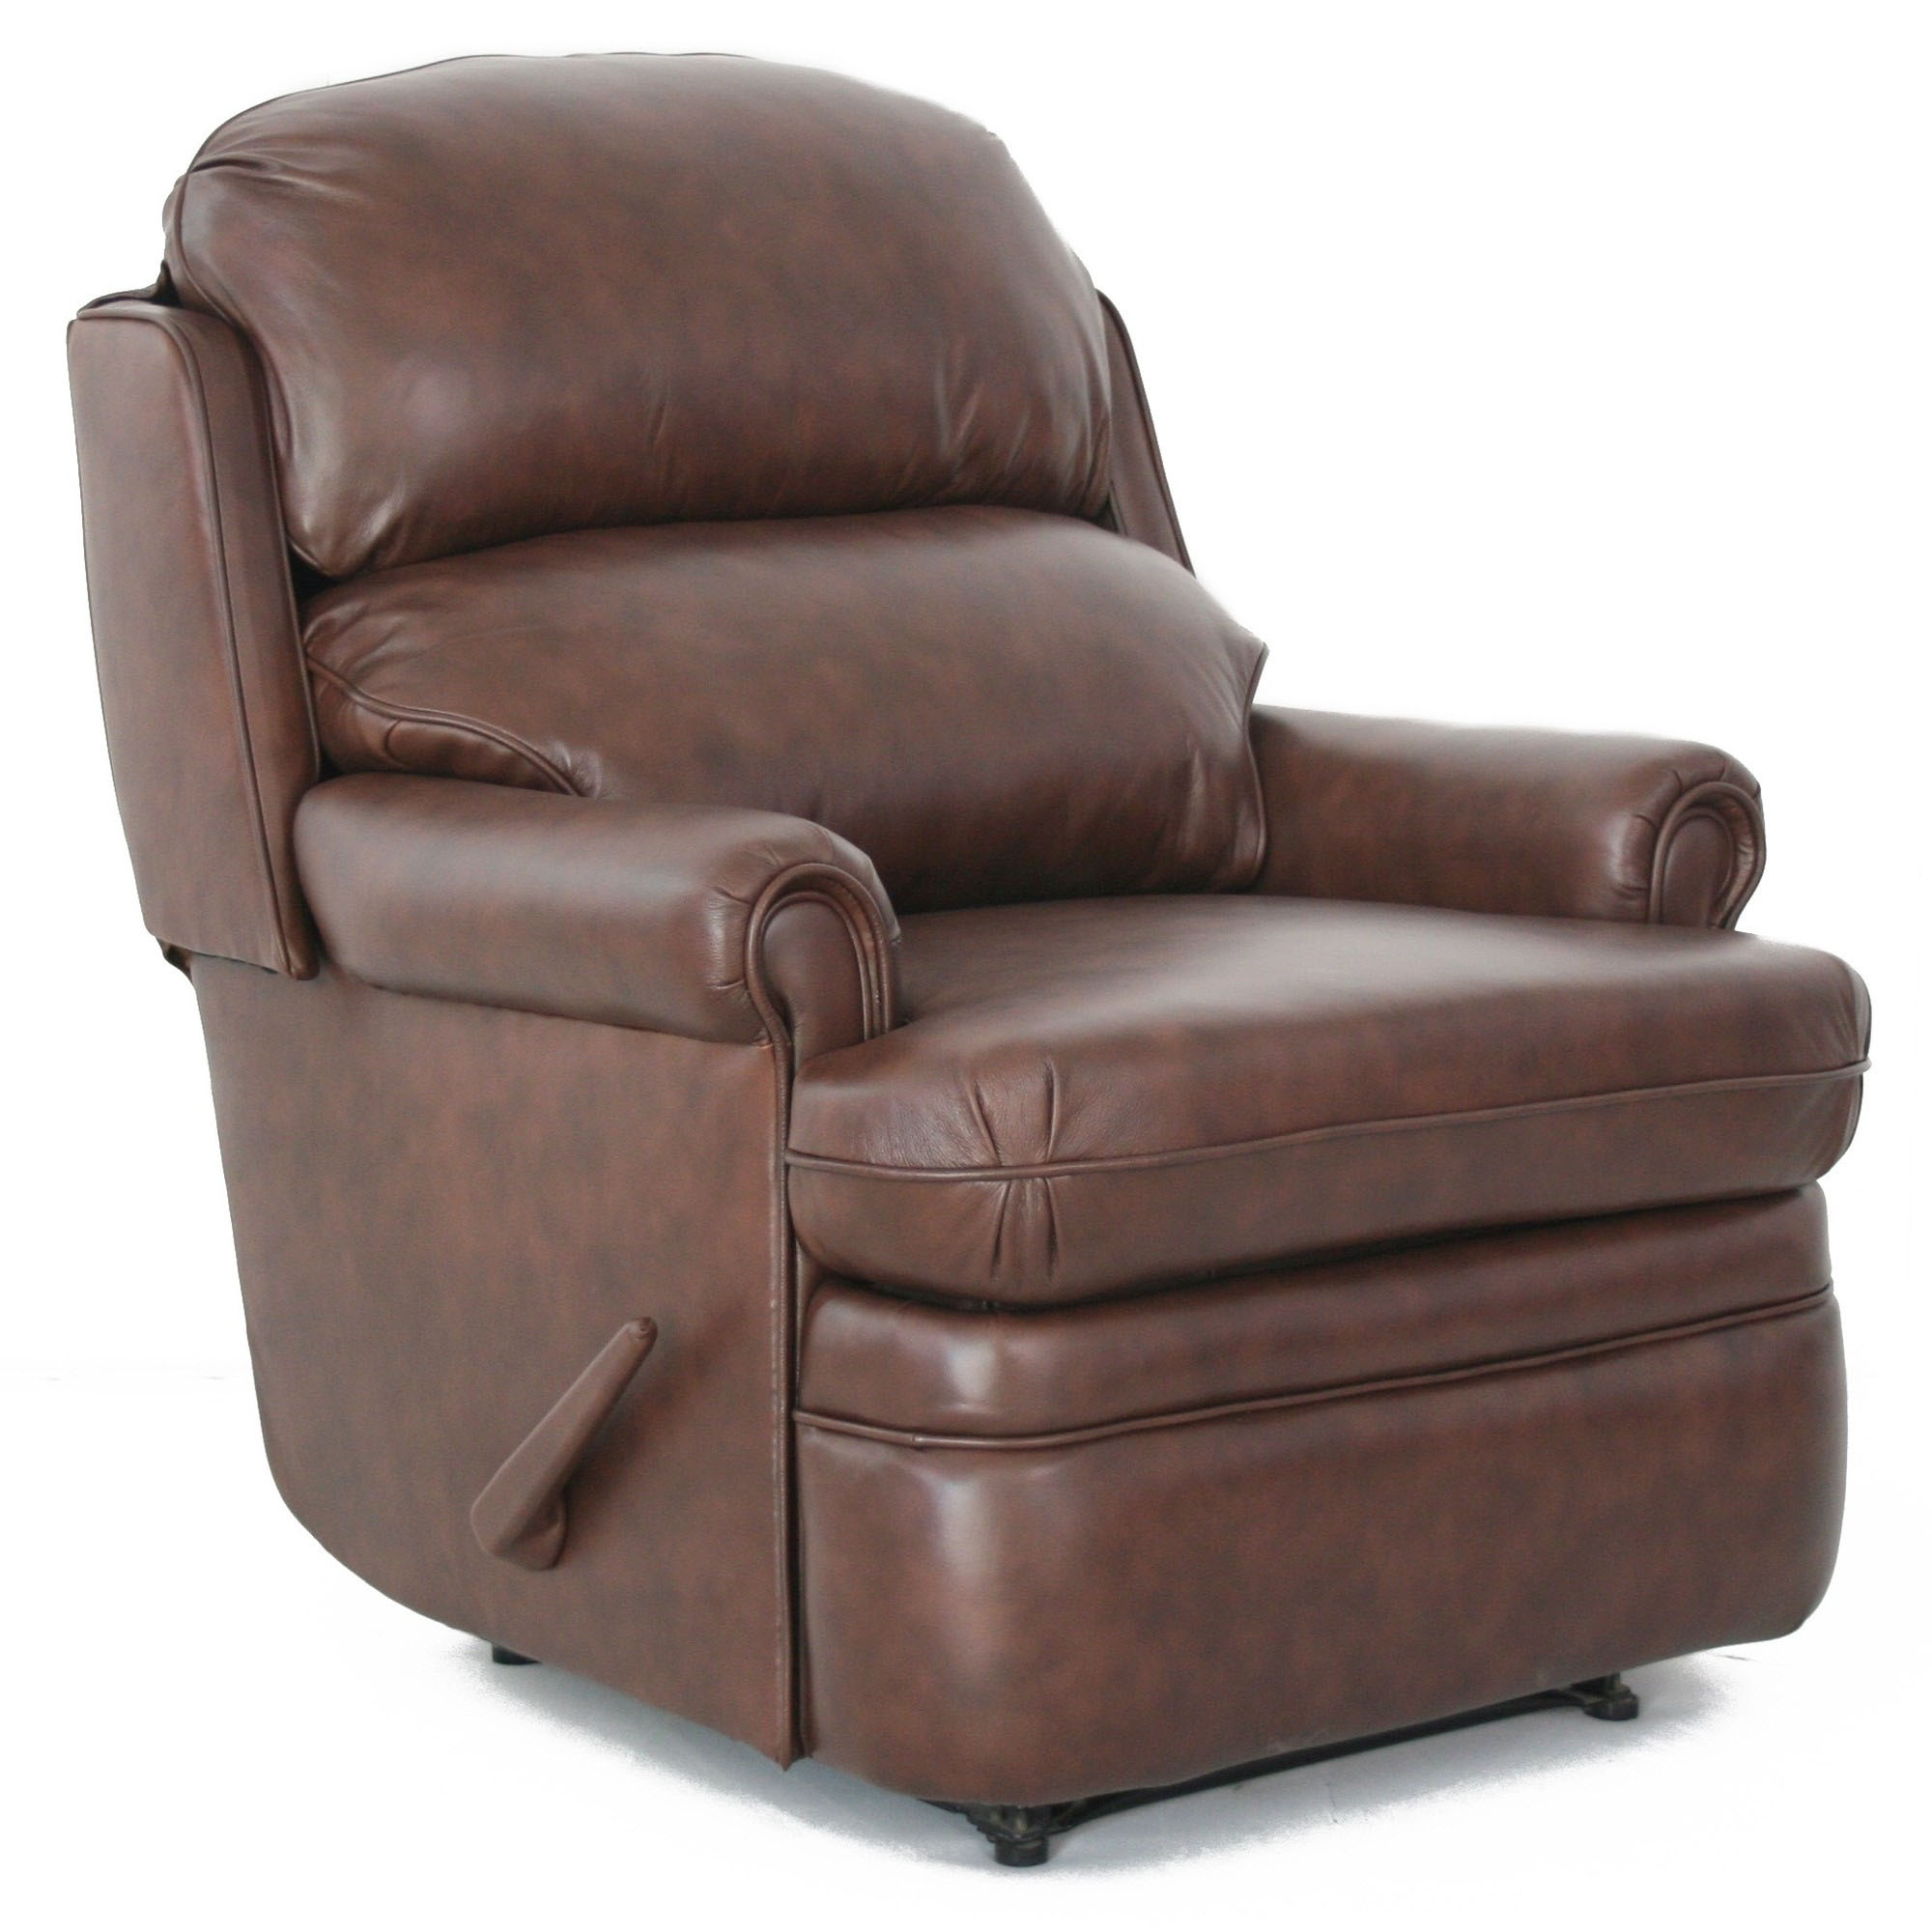 Barcalounger Capital Club II Recliner Chair Brown Leather  sc 1 st  Vitalityweb.com & Barcalounger Capital Club II Wall Hugger Recliner Chair - Leather ... islam-shia.org